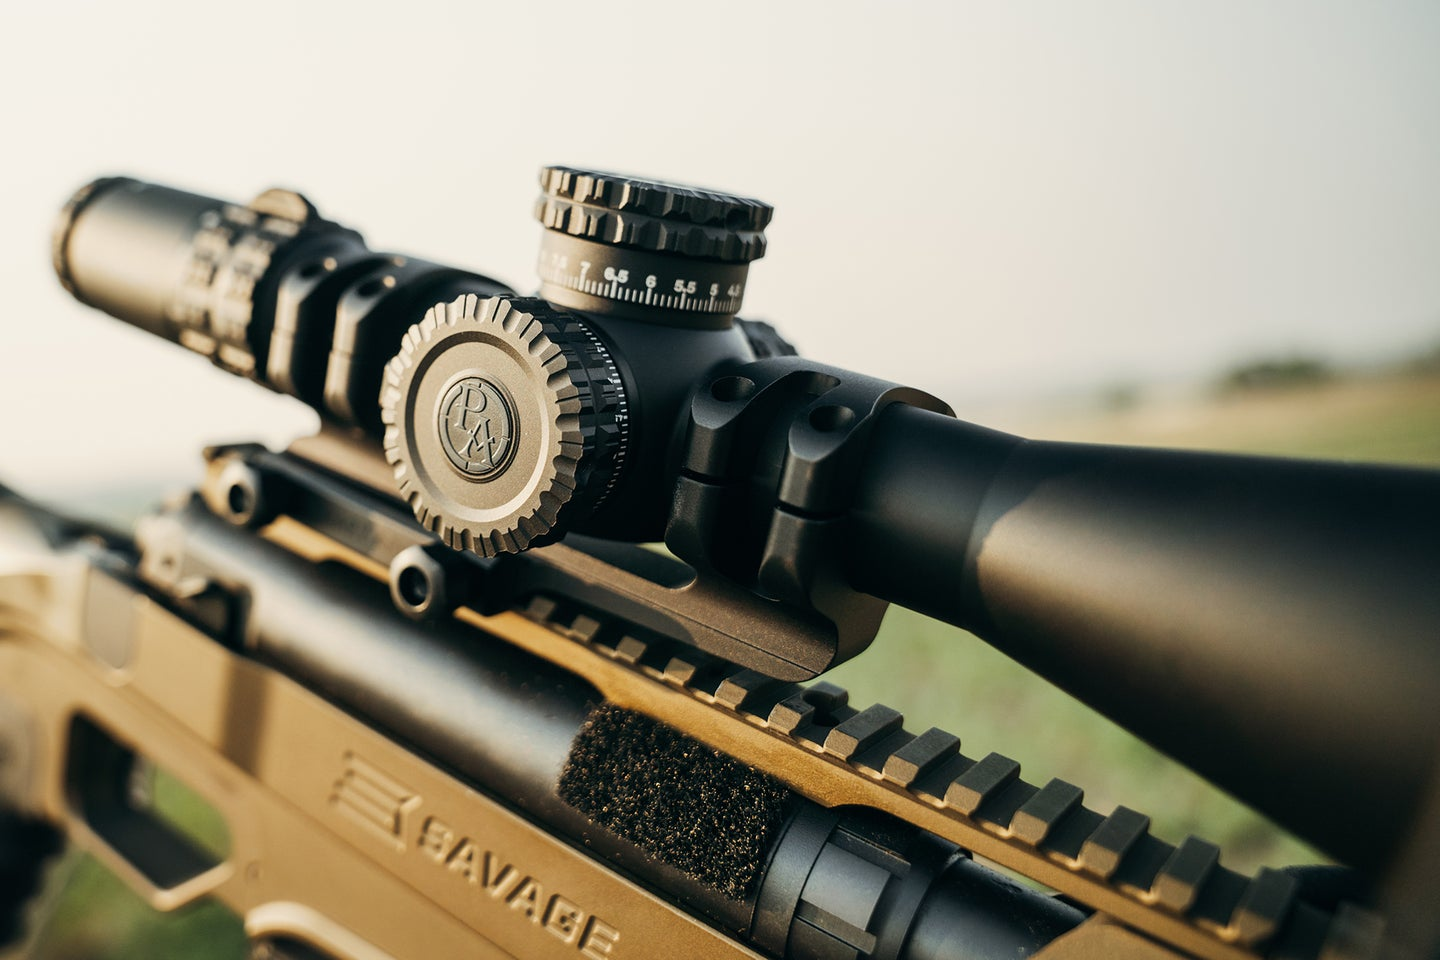 A Primary Arms scope on top of a gold rifle shot at an angle